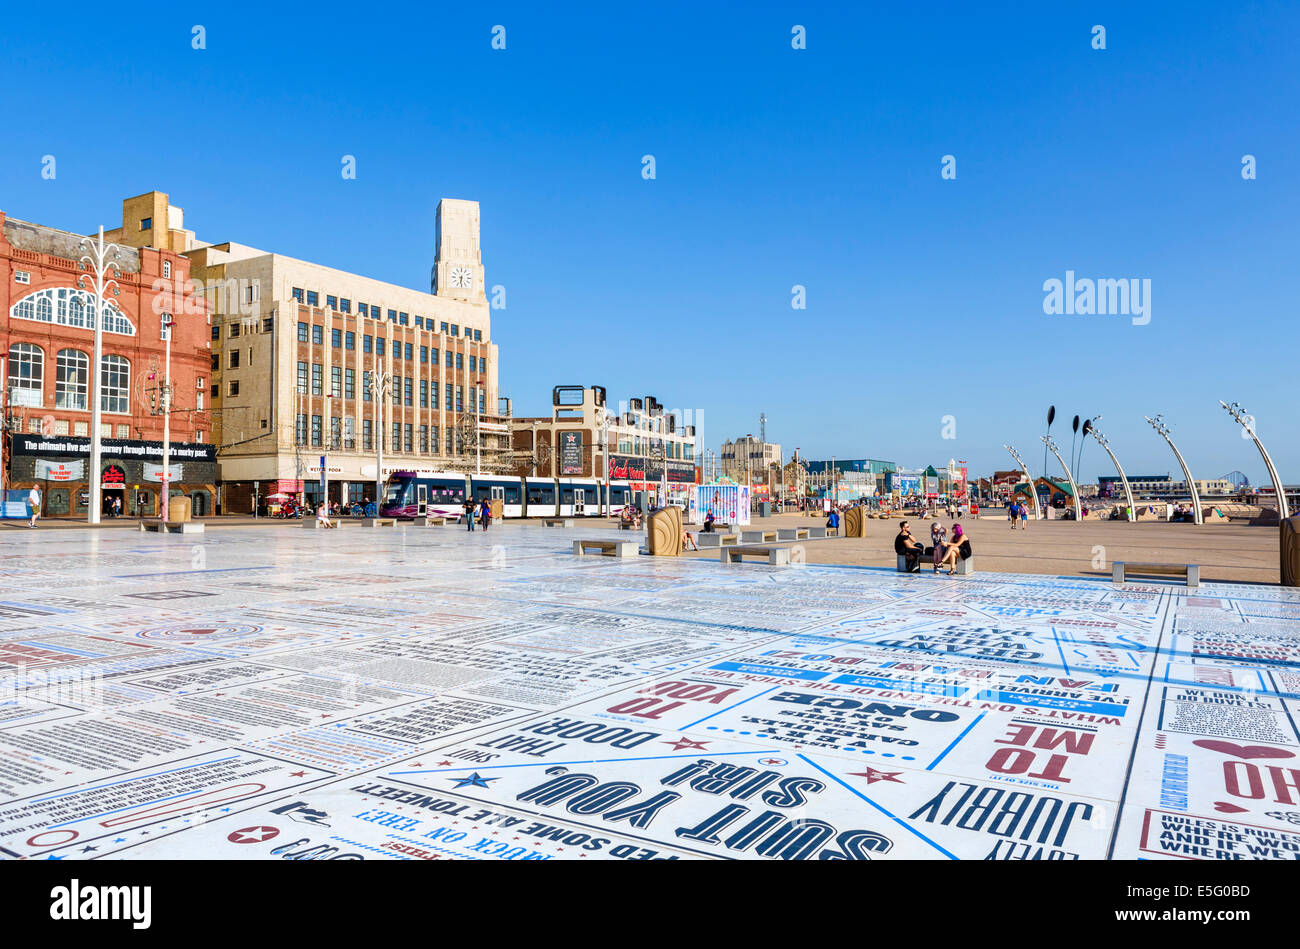 The Comedy Carpet, comedians catchphrases displayed on promenade outside Blackpool Tower, The Golden Mile, Blackpool, Stock Photo